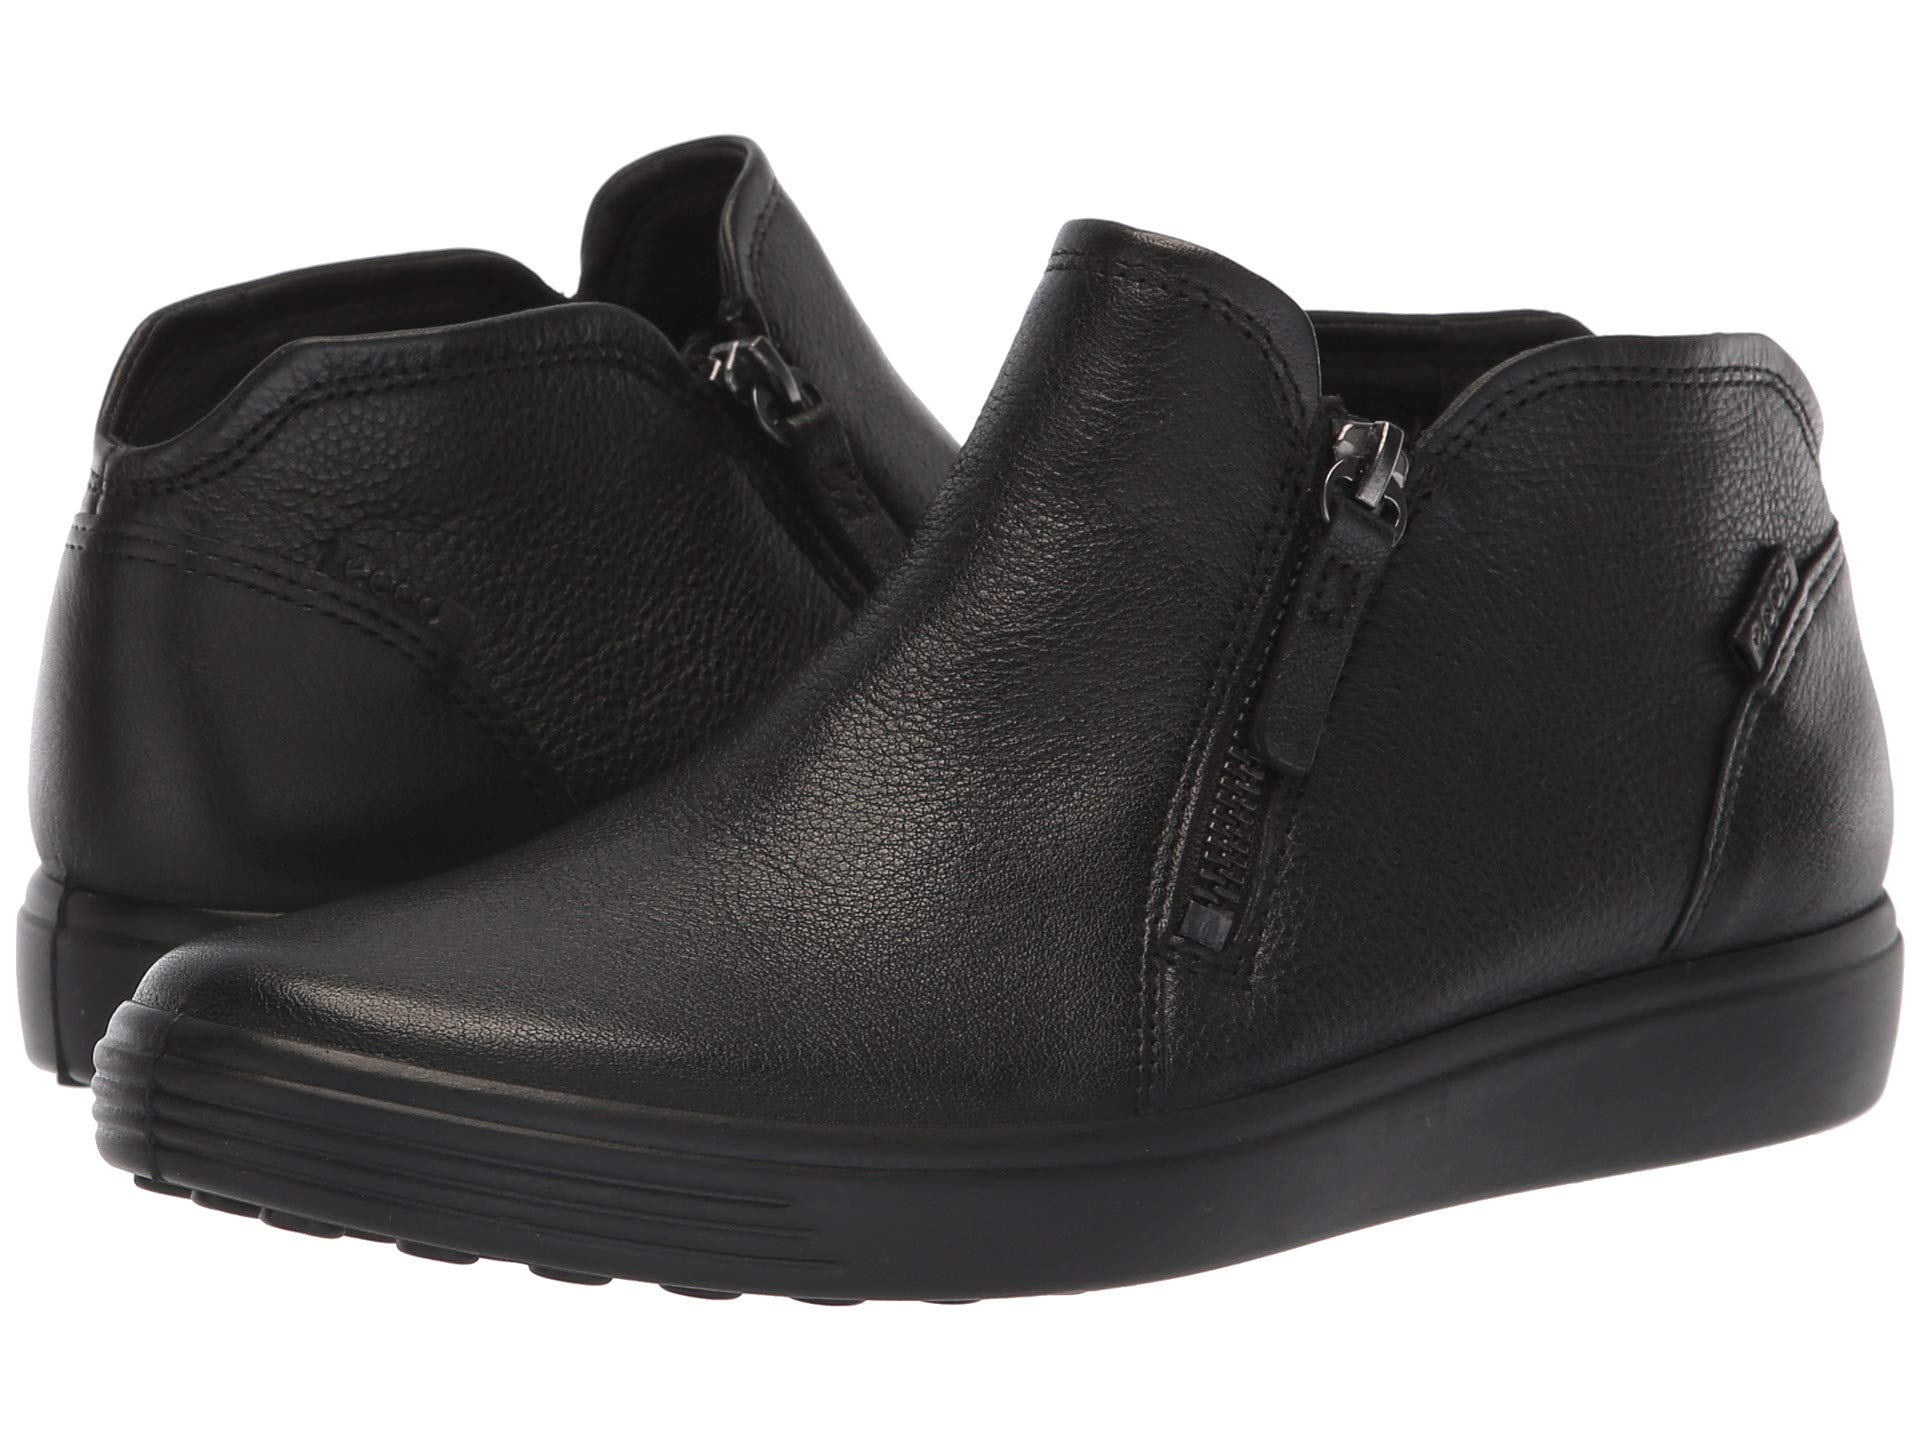 5e7daf3f9c8901 Ecco Womens Black Powder Leather Ankle Sneaker Soft 7 Low Bootie Shoe 6 New